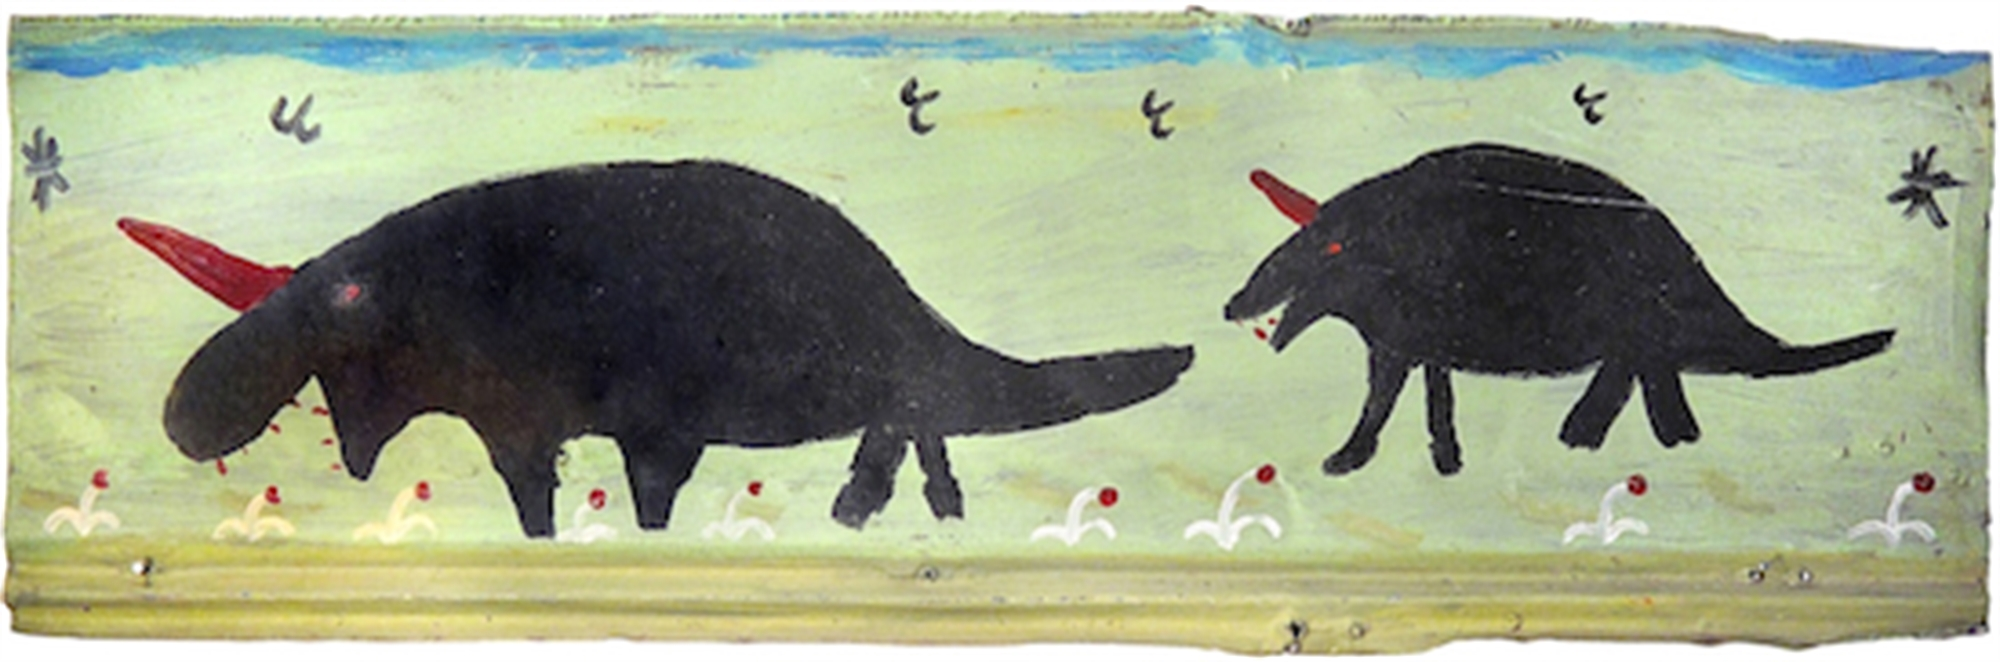 Two Black Dinosaurs with Birds by R.A. Miller